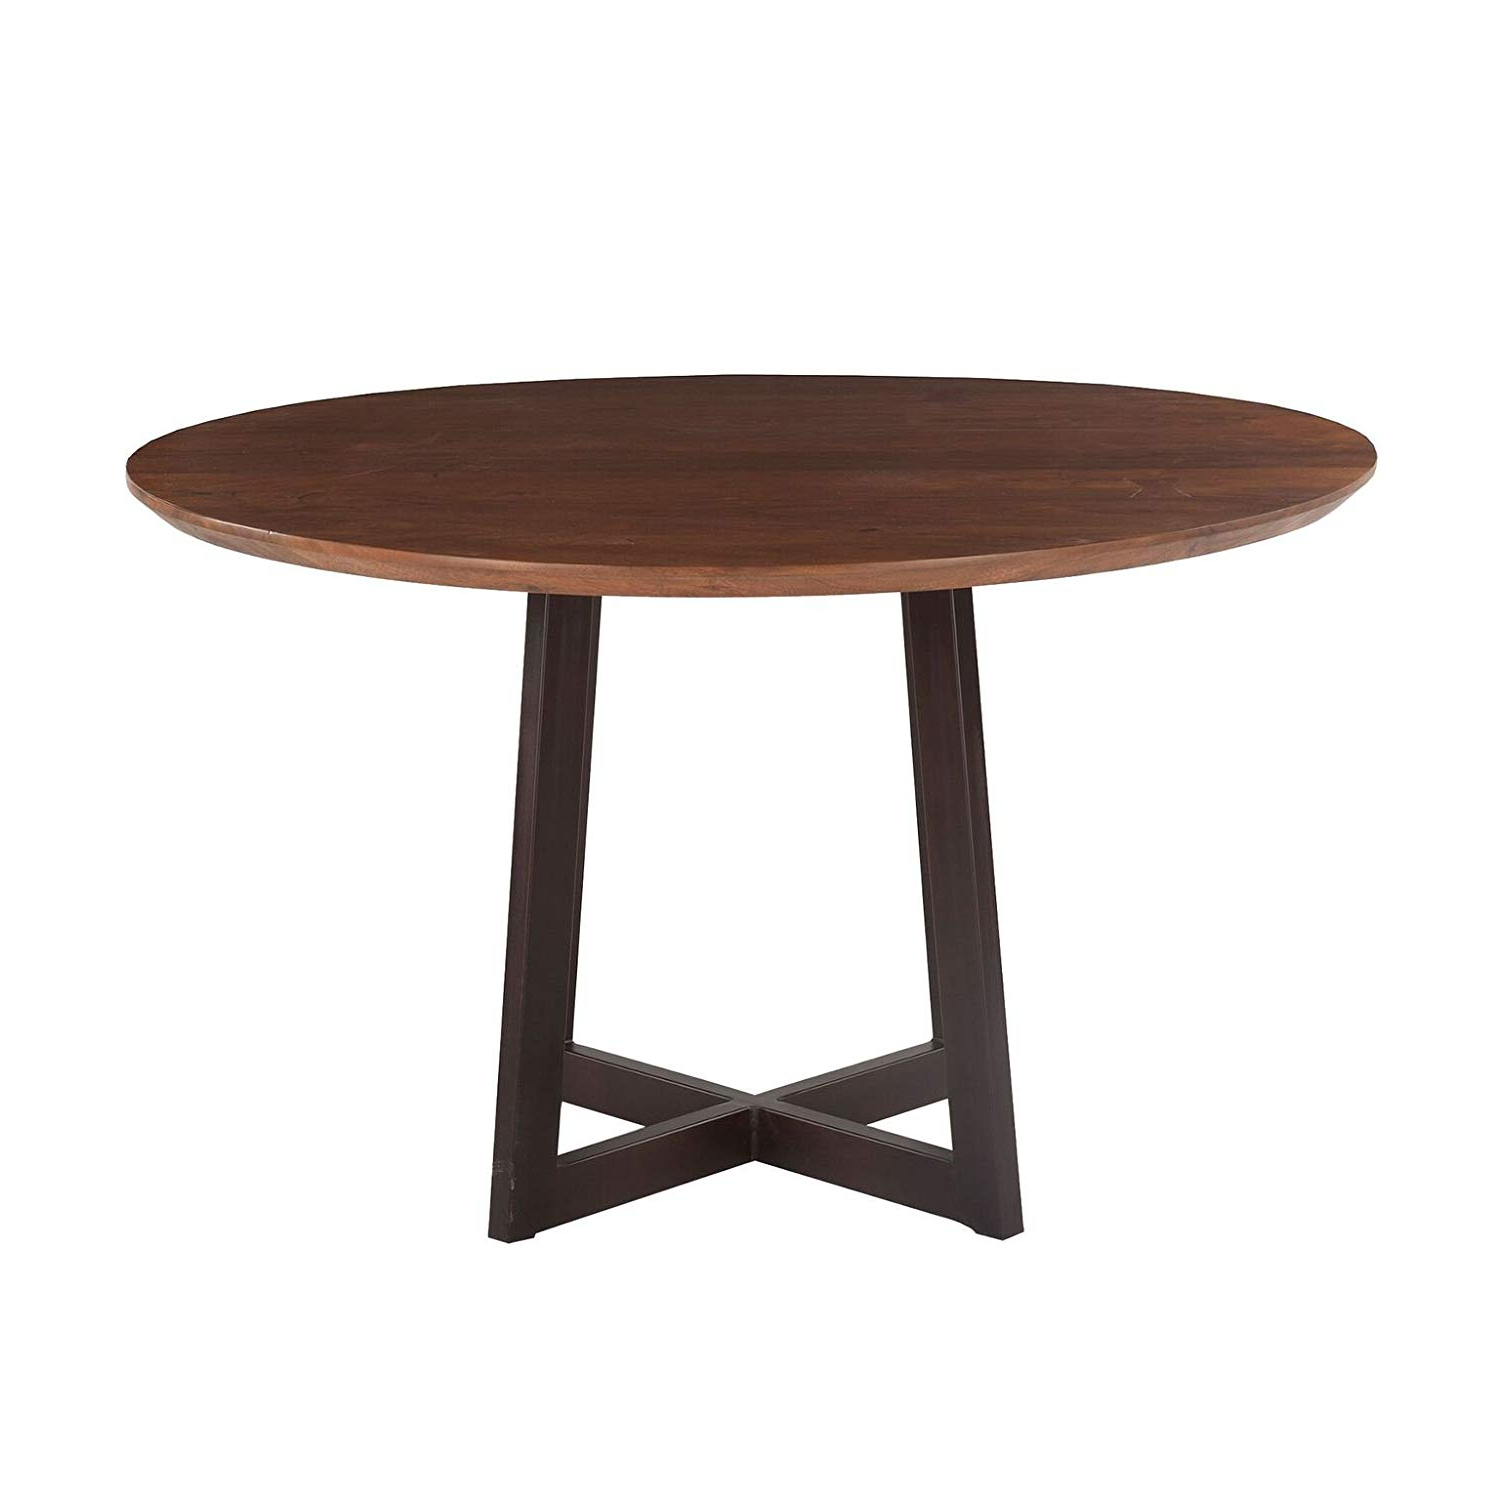 Acacia Dining Tables With Black X Legs In 2020 Amazon – World Interiors Acacia Wood And Iron Round (View 6 of 25)